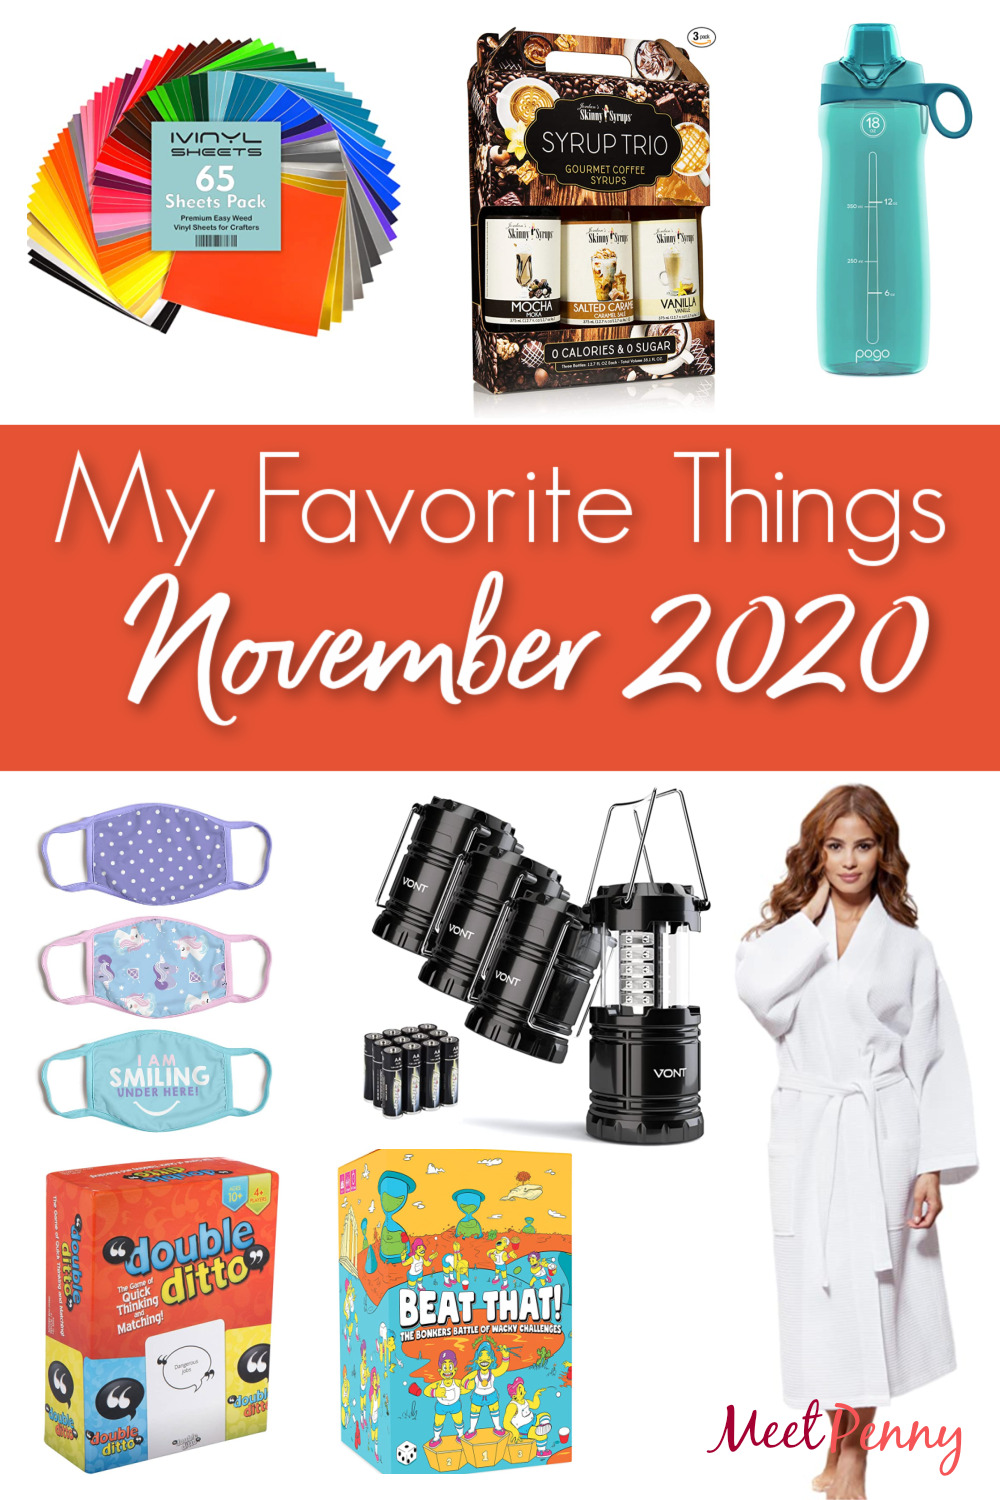 Great gift ideas and helpful items for families are among my favorite things for November.